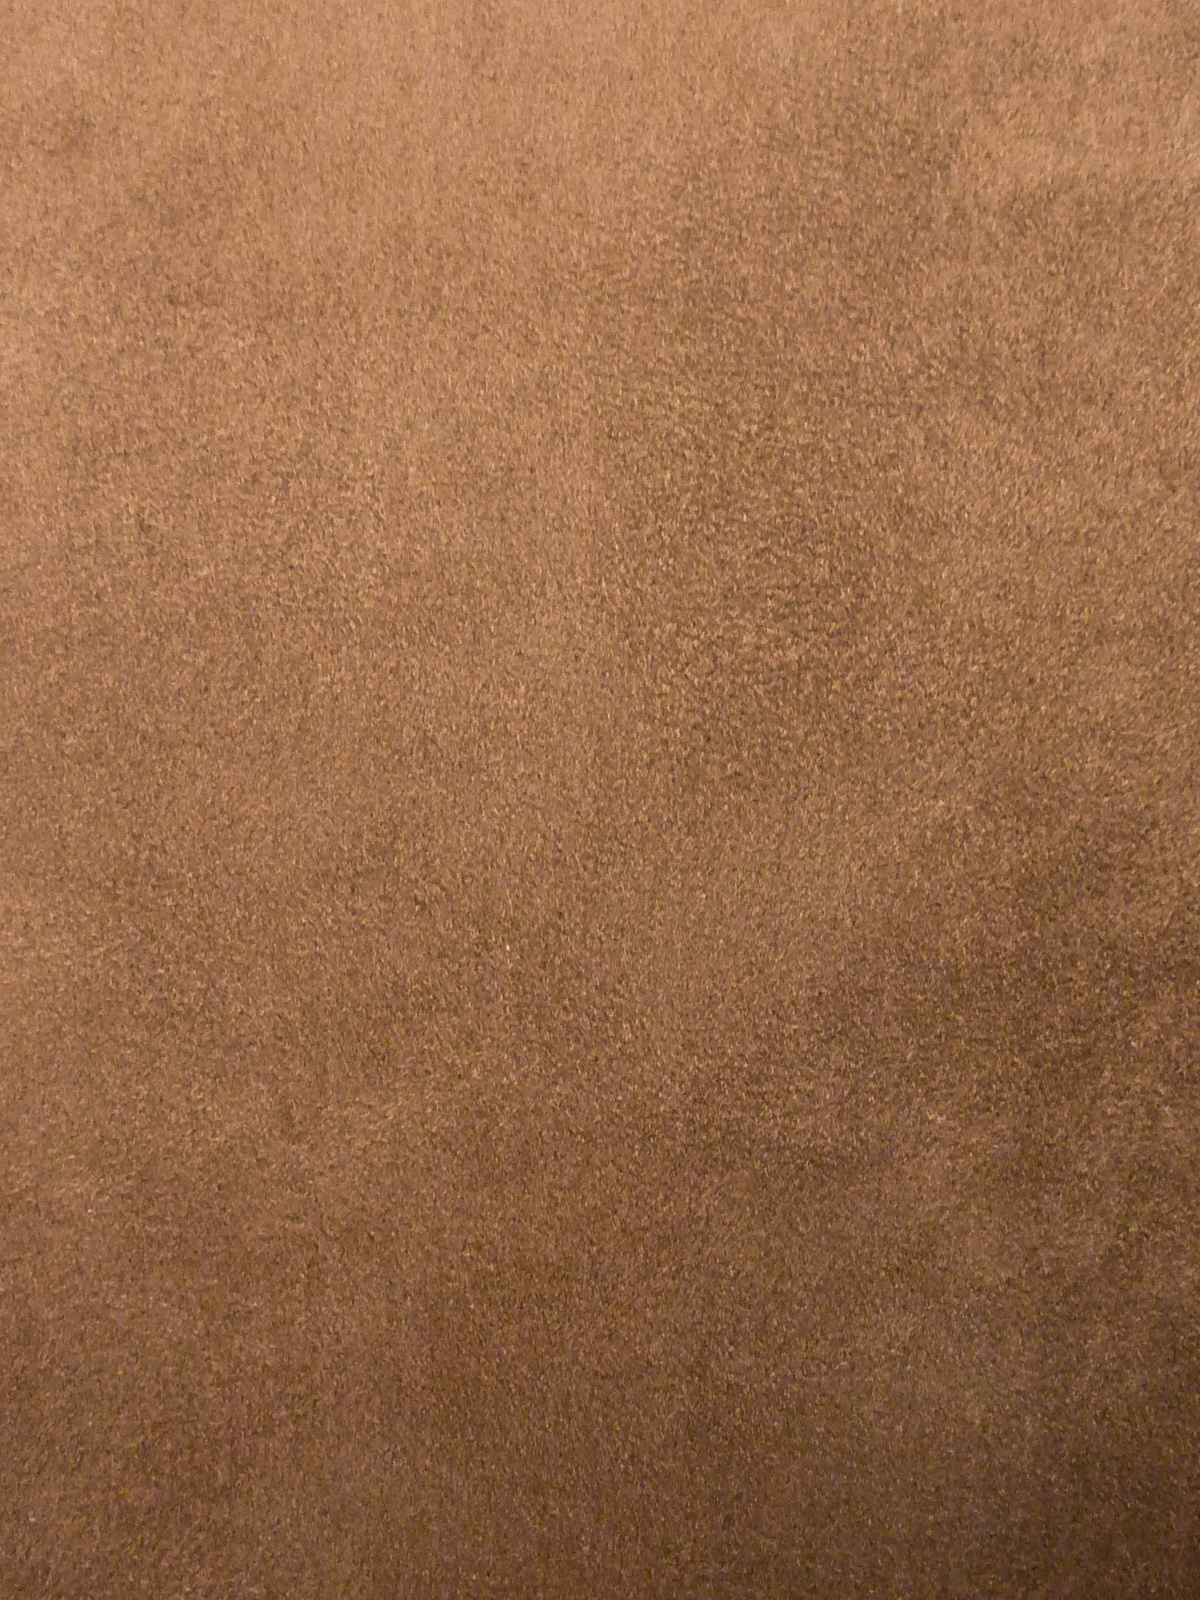 SUEDE FREE Wallpapers Background images   hippowallpaperscom 1200x1600